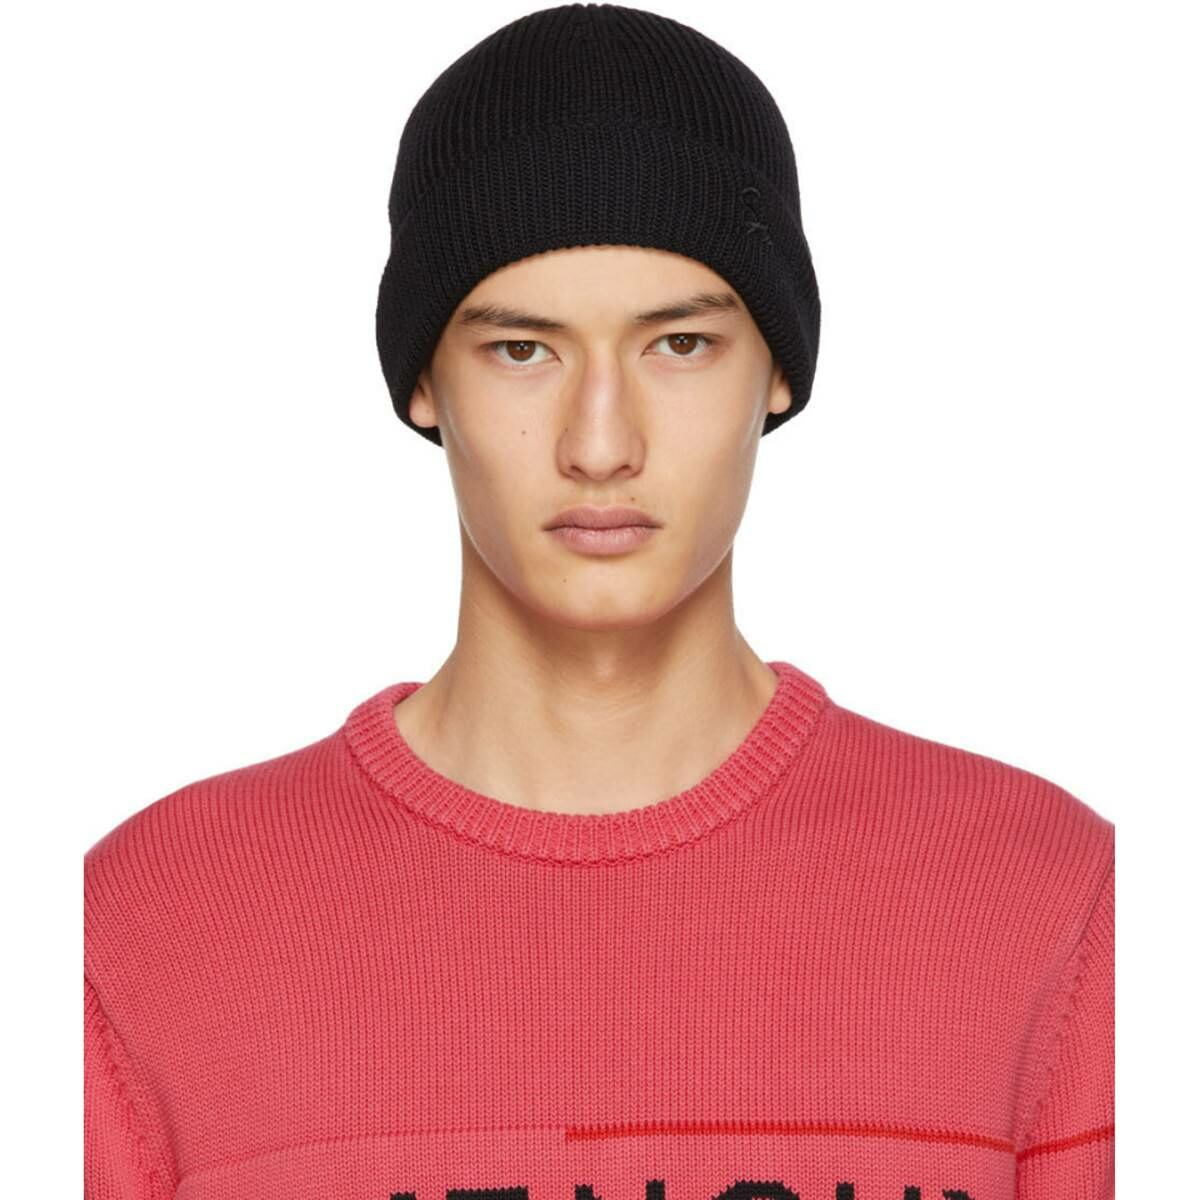 Givenchy Black Wool Embroidered Beanie Ssense USA MEN Men ACCESSORIES Mens HATS